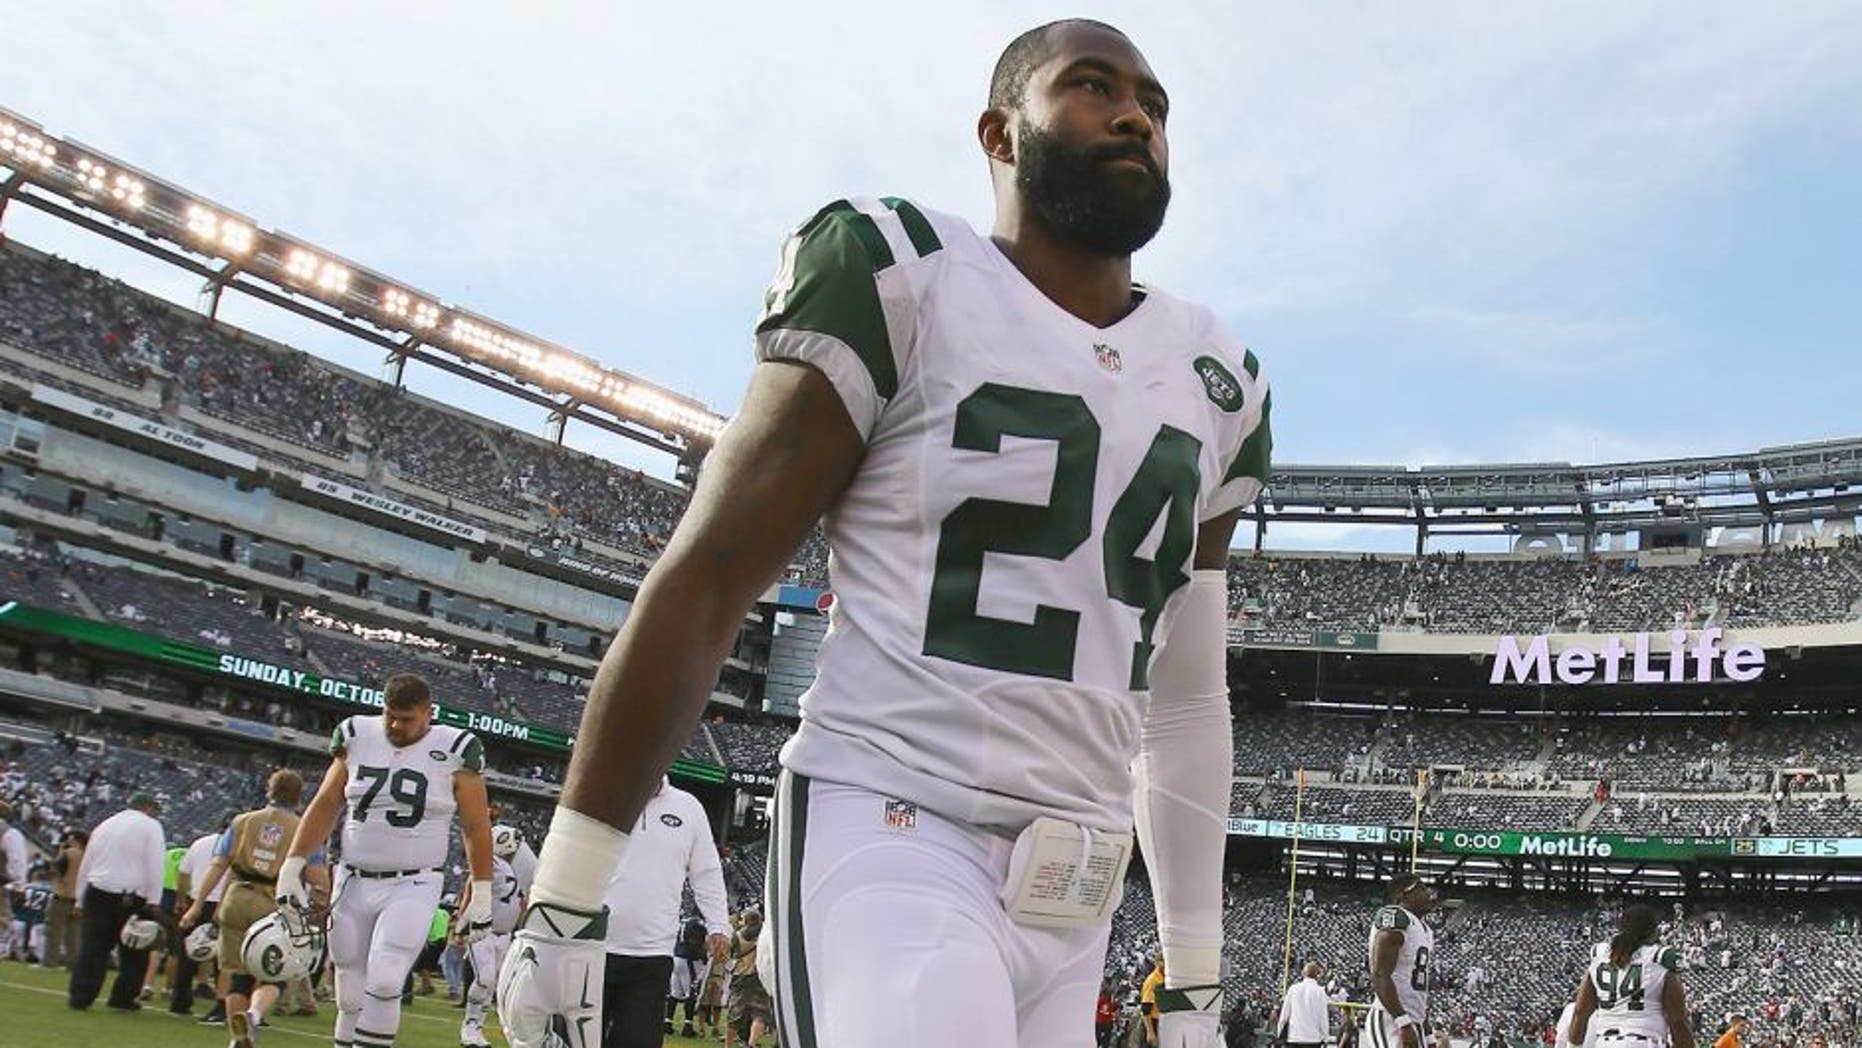 EAST RUTHERFORD, NJ - SEPTEMBER 27: Darrelle Revis #24 of the New York Jets walks off the field after the Jets 24-17 loss against the Philadelphia Eagles at MetLife Stadium on September 27, 2015 in East Rutherford, New Jersey. (Photo by Al Bello/Getty Images)